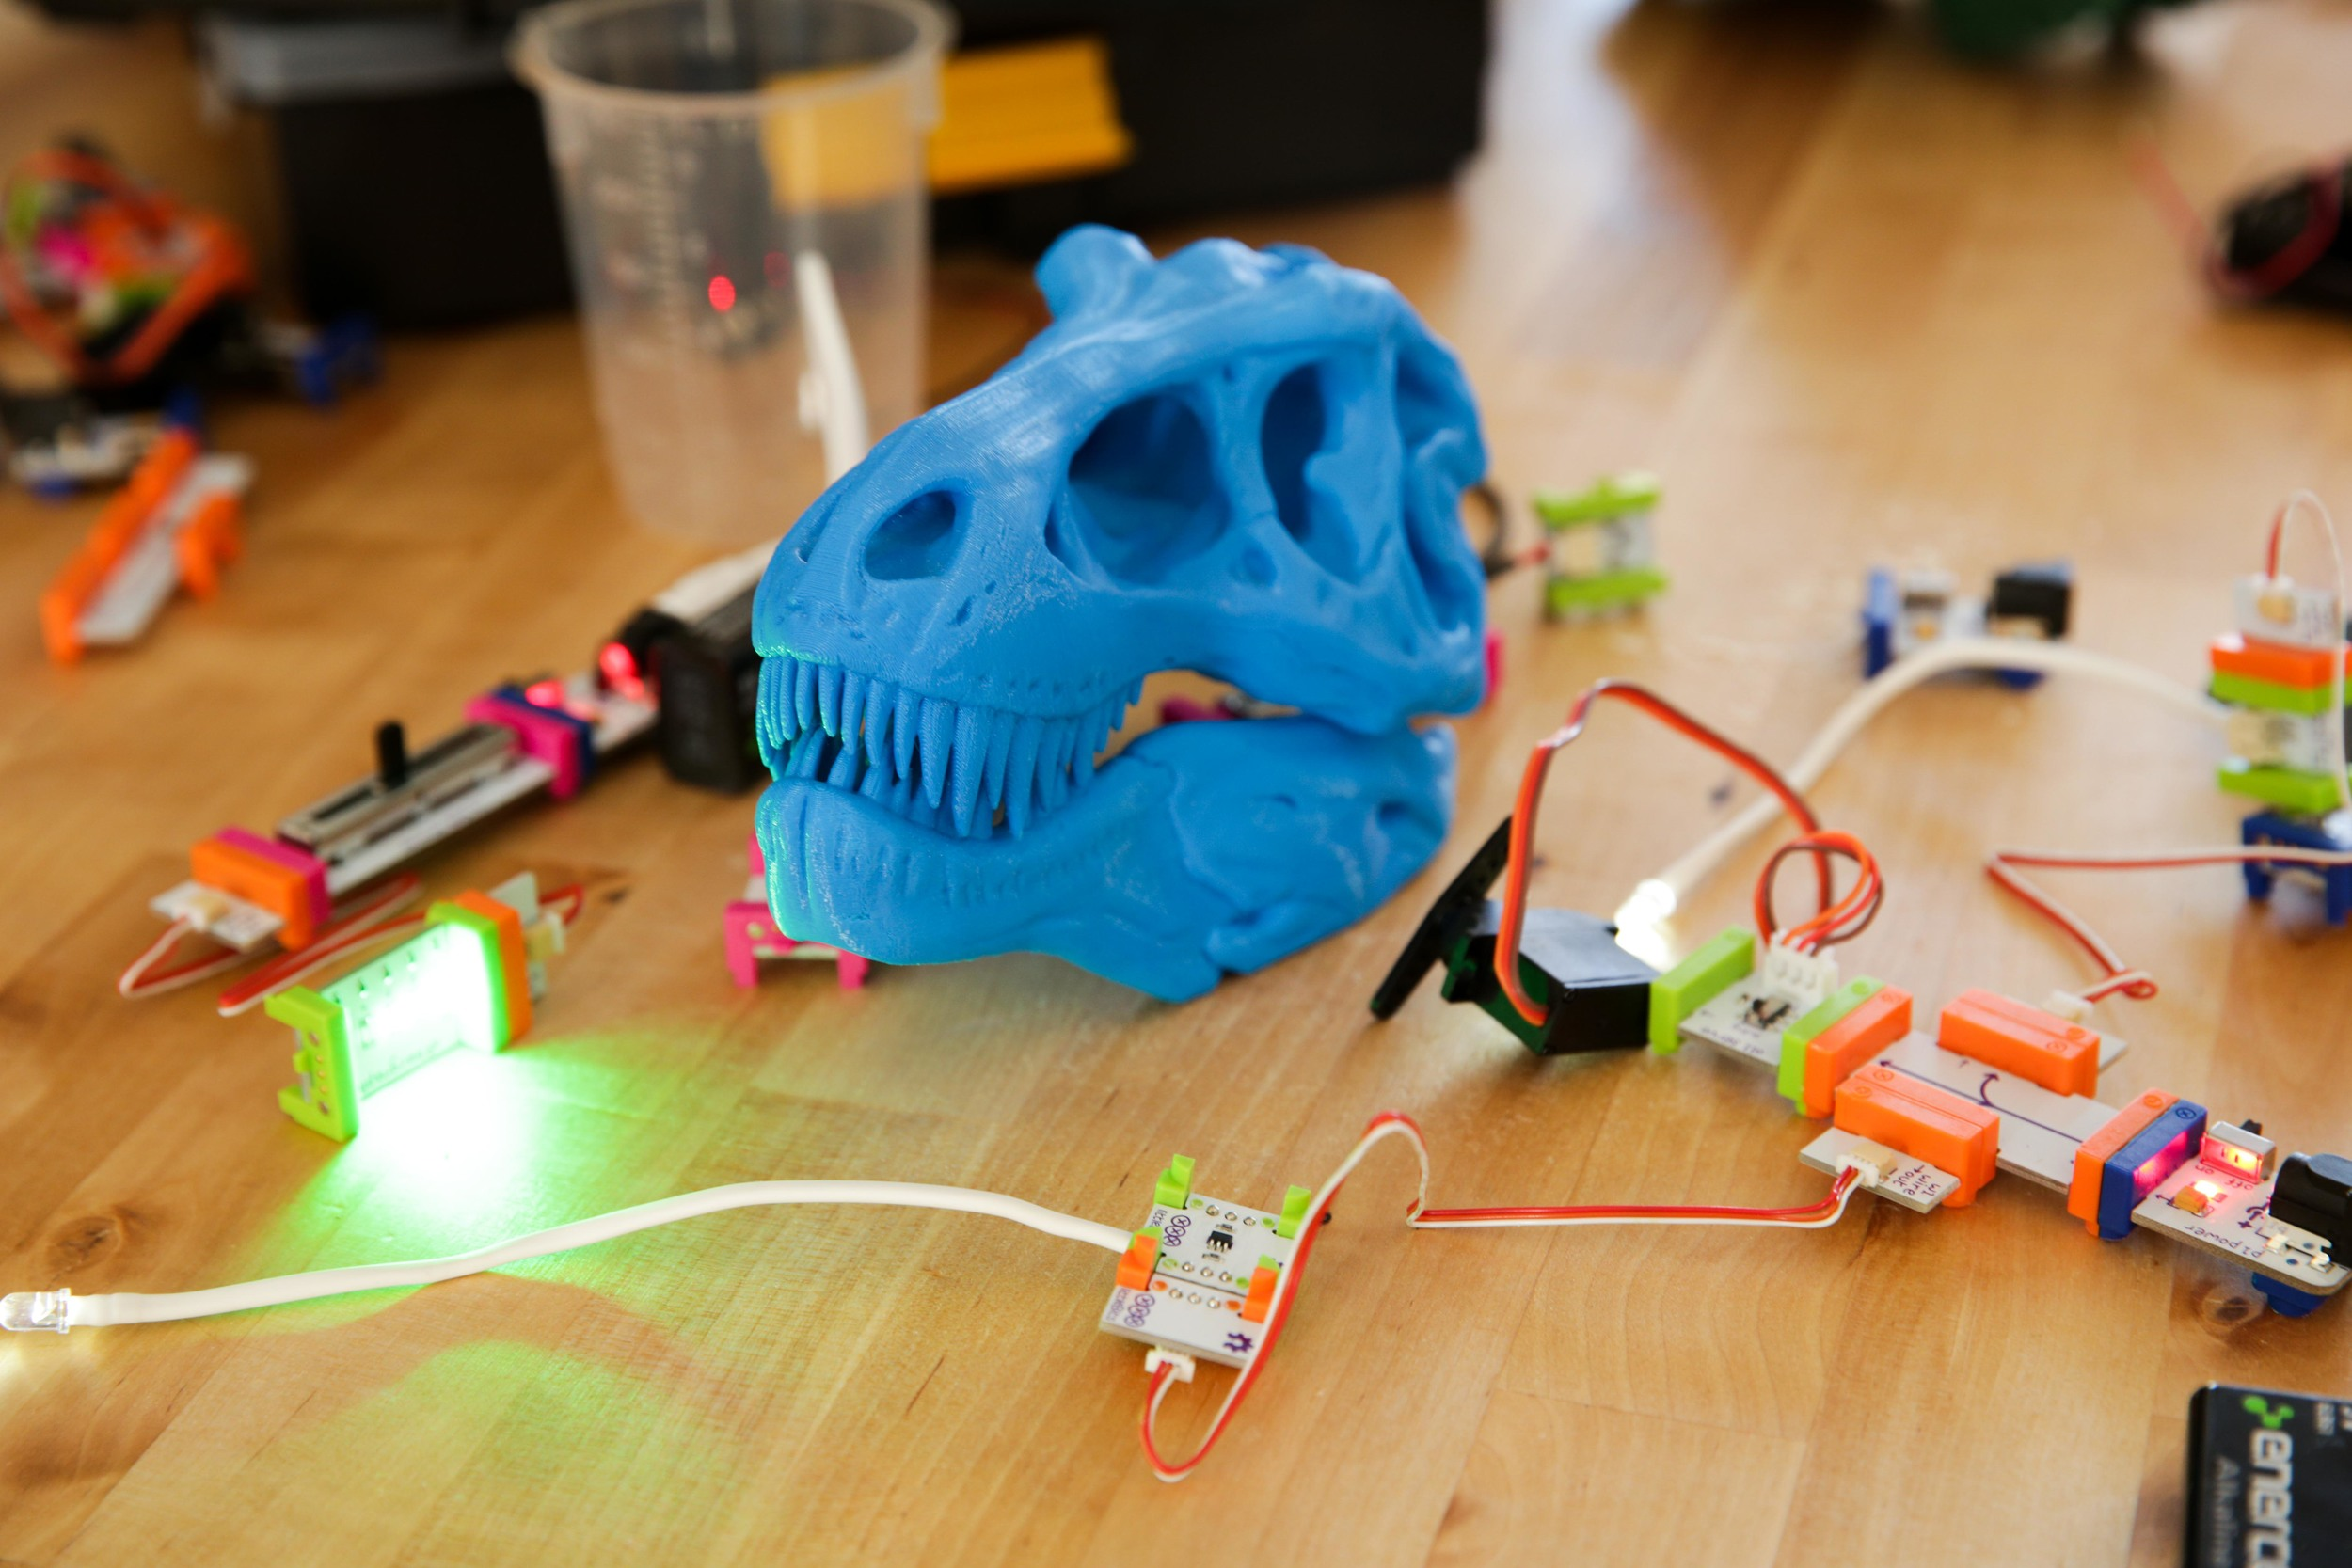 Kid friendly electronics and a 3D printed T-rex skull, photographed for the Laboratory Chicago